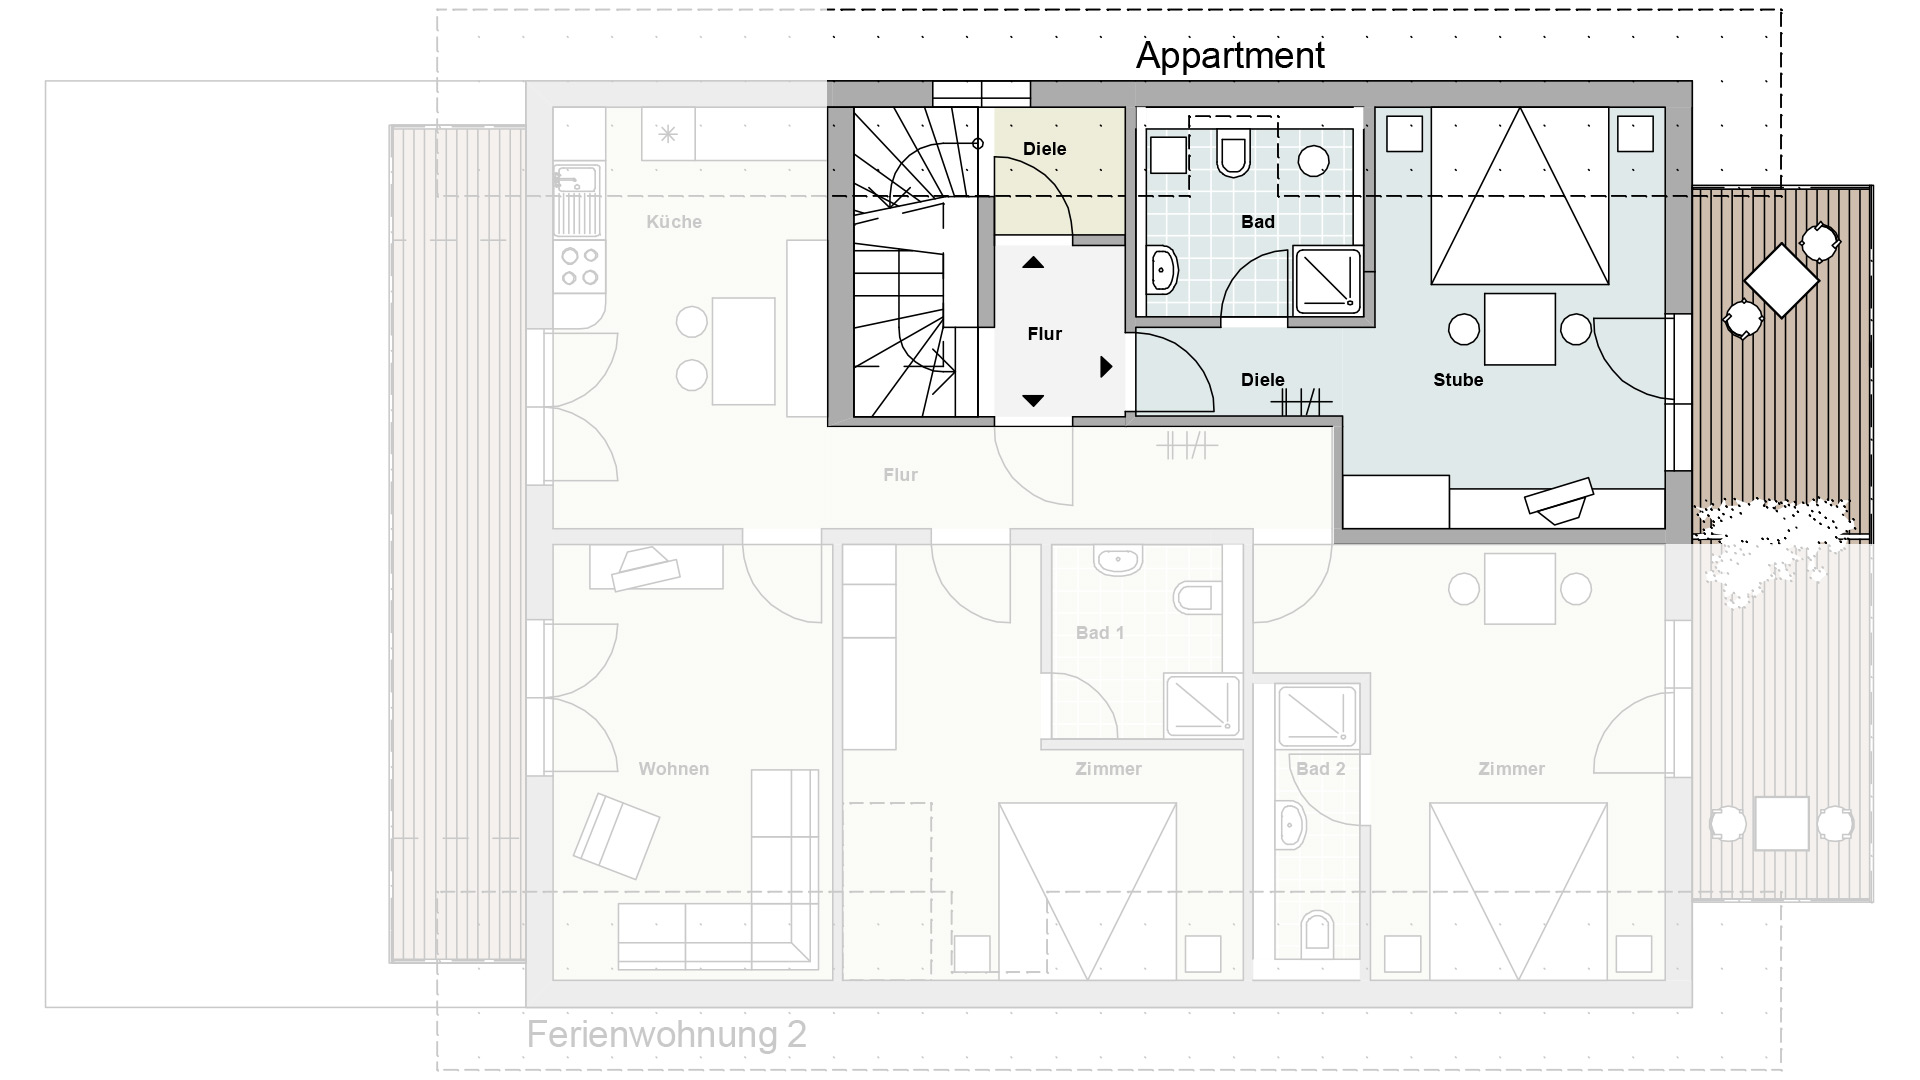 grundriss_apartment.jpg